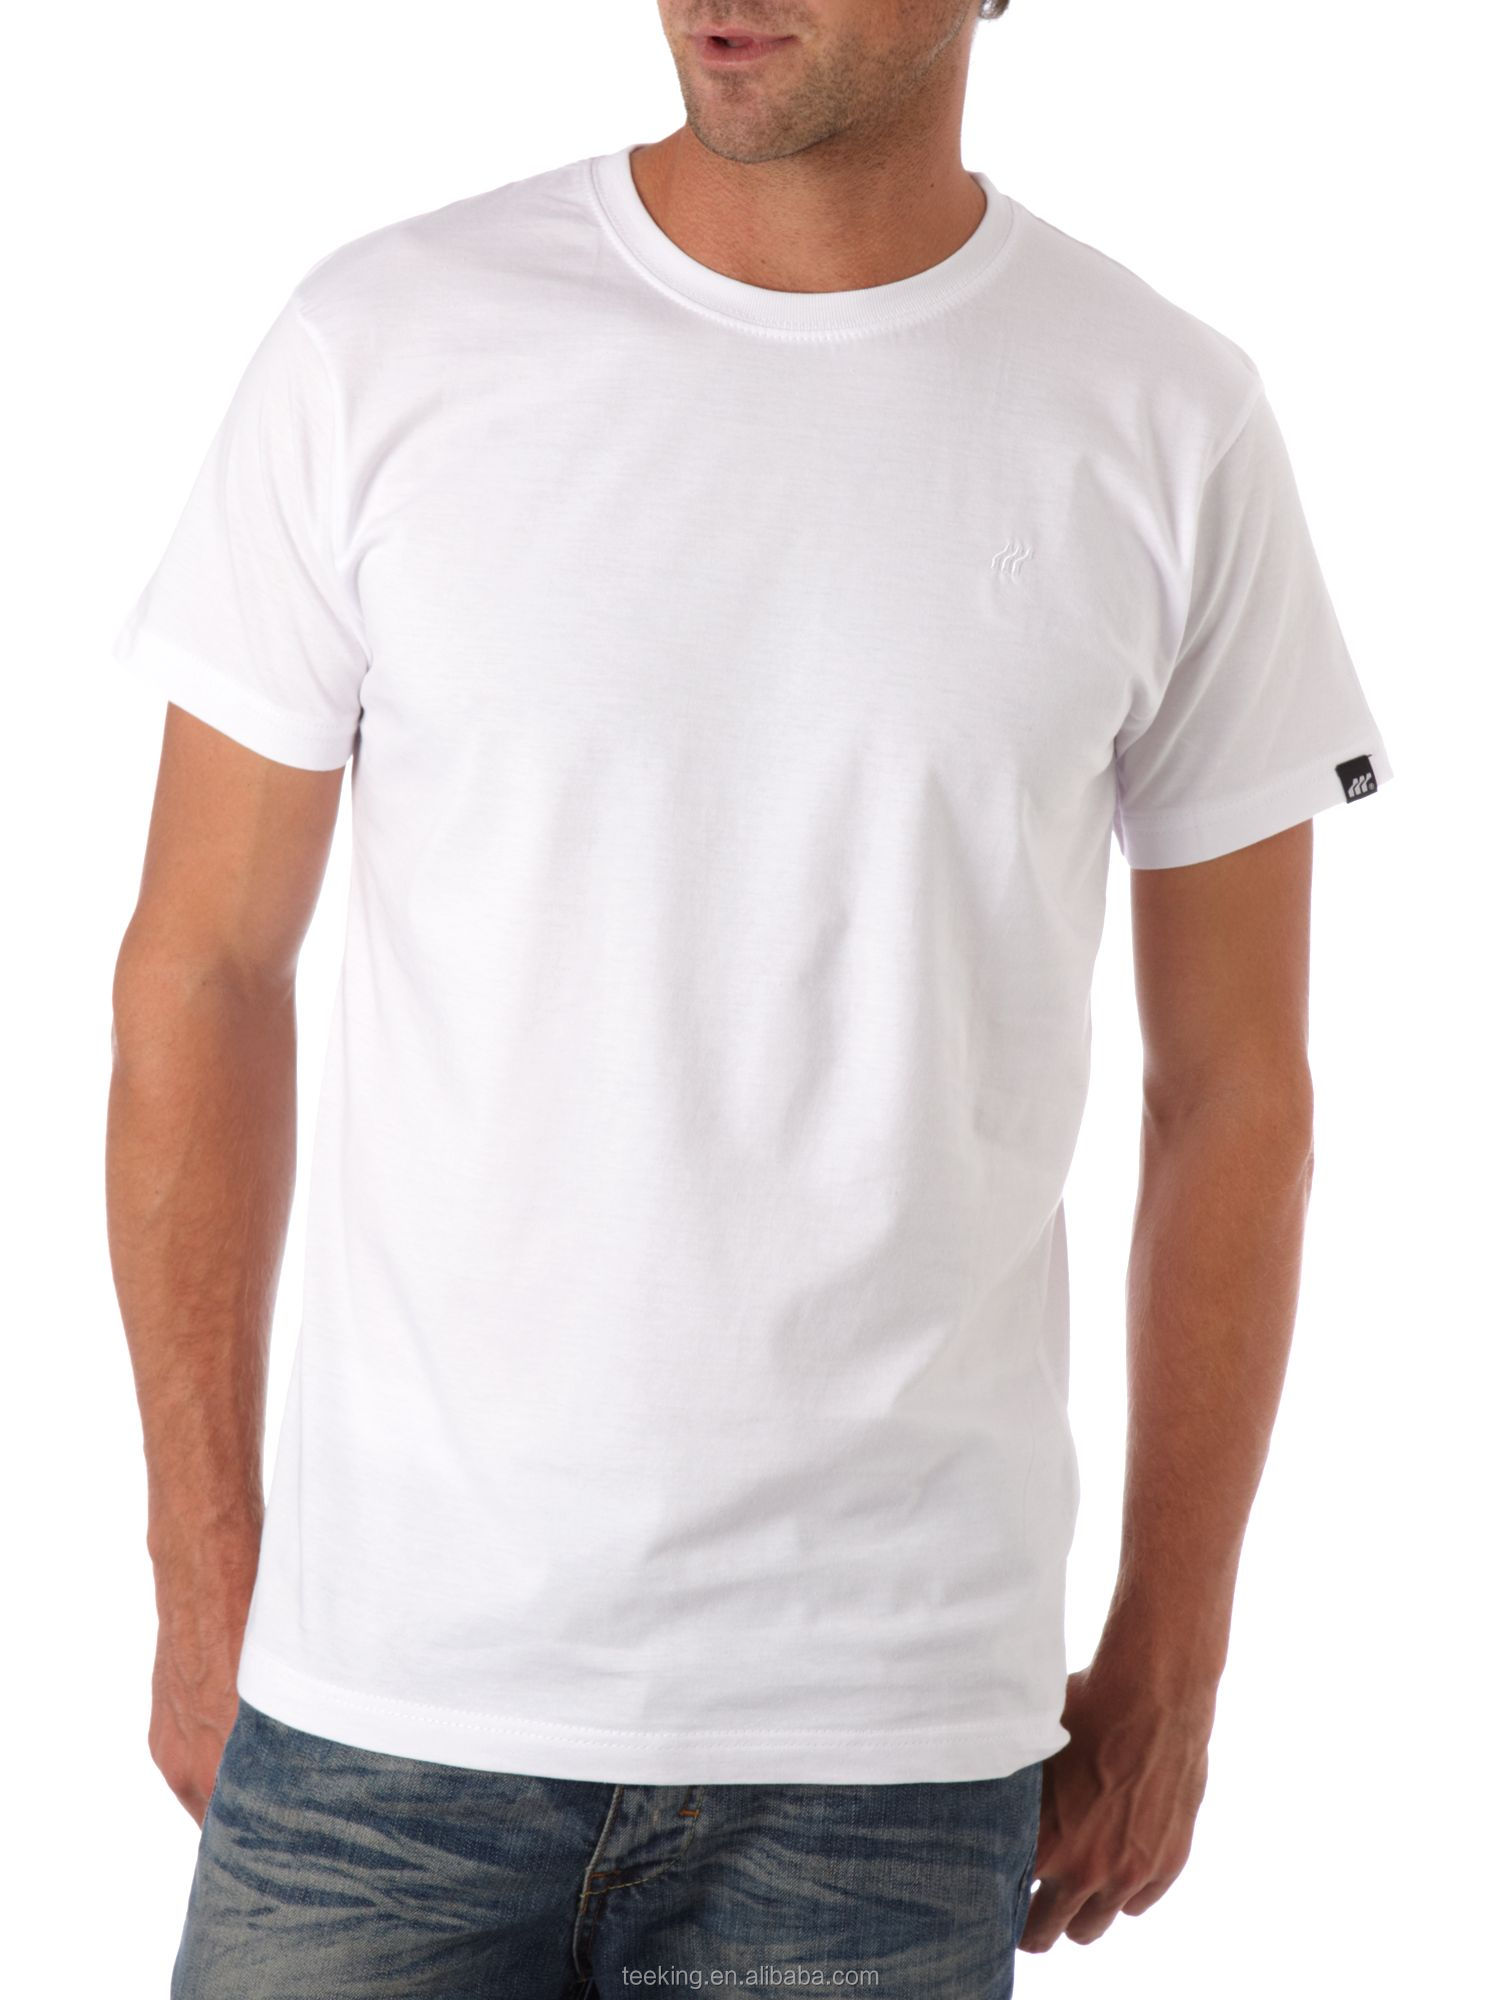 Cheap custom white t shirt blank buy white t shirt white for Where to order blank t shirts